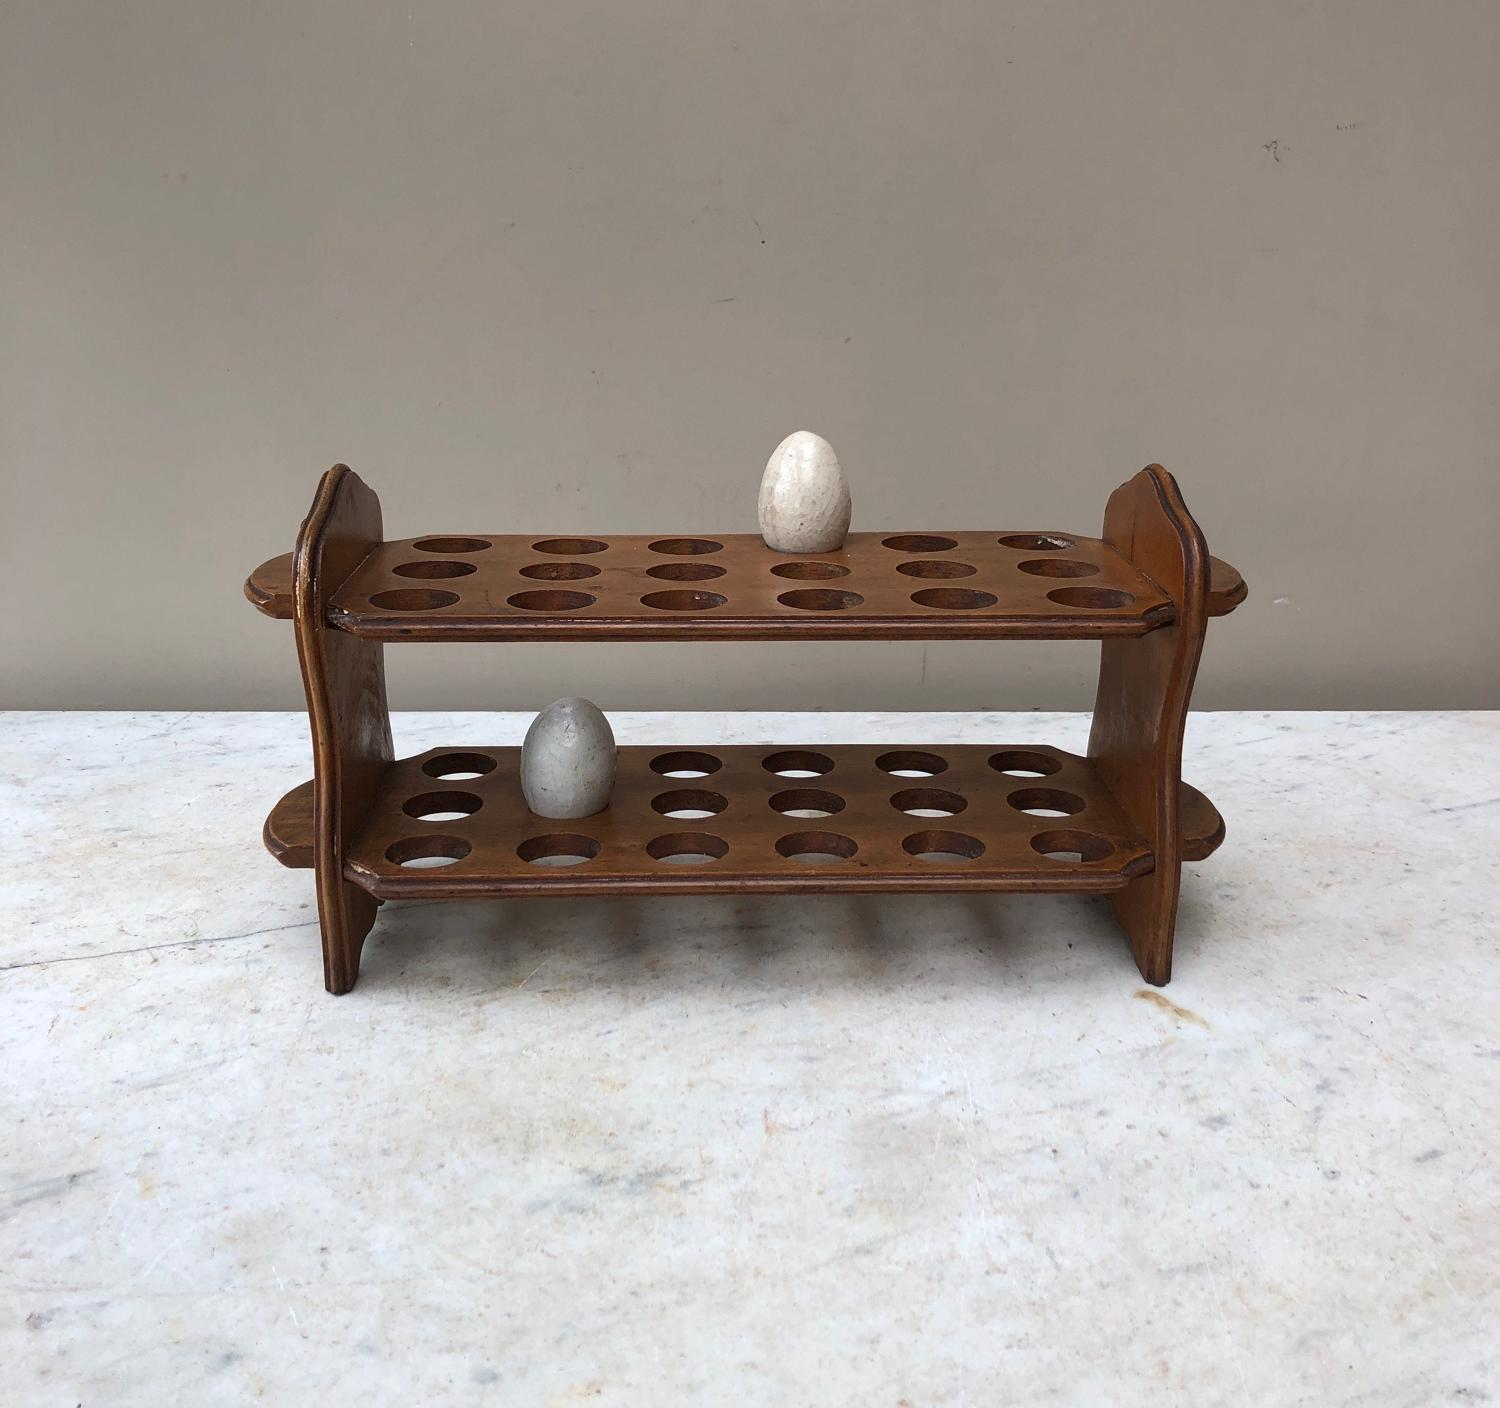 Early 20th Century Large Two Tier Egg Rack for Three Dozen (36) Eggs